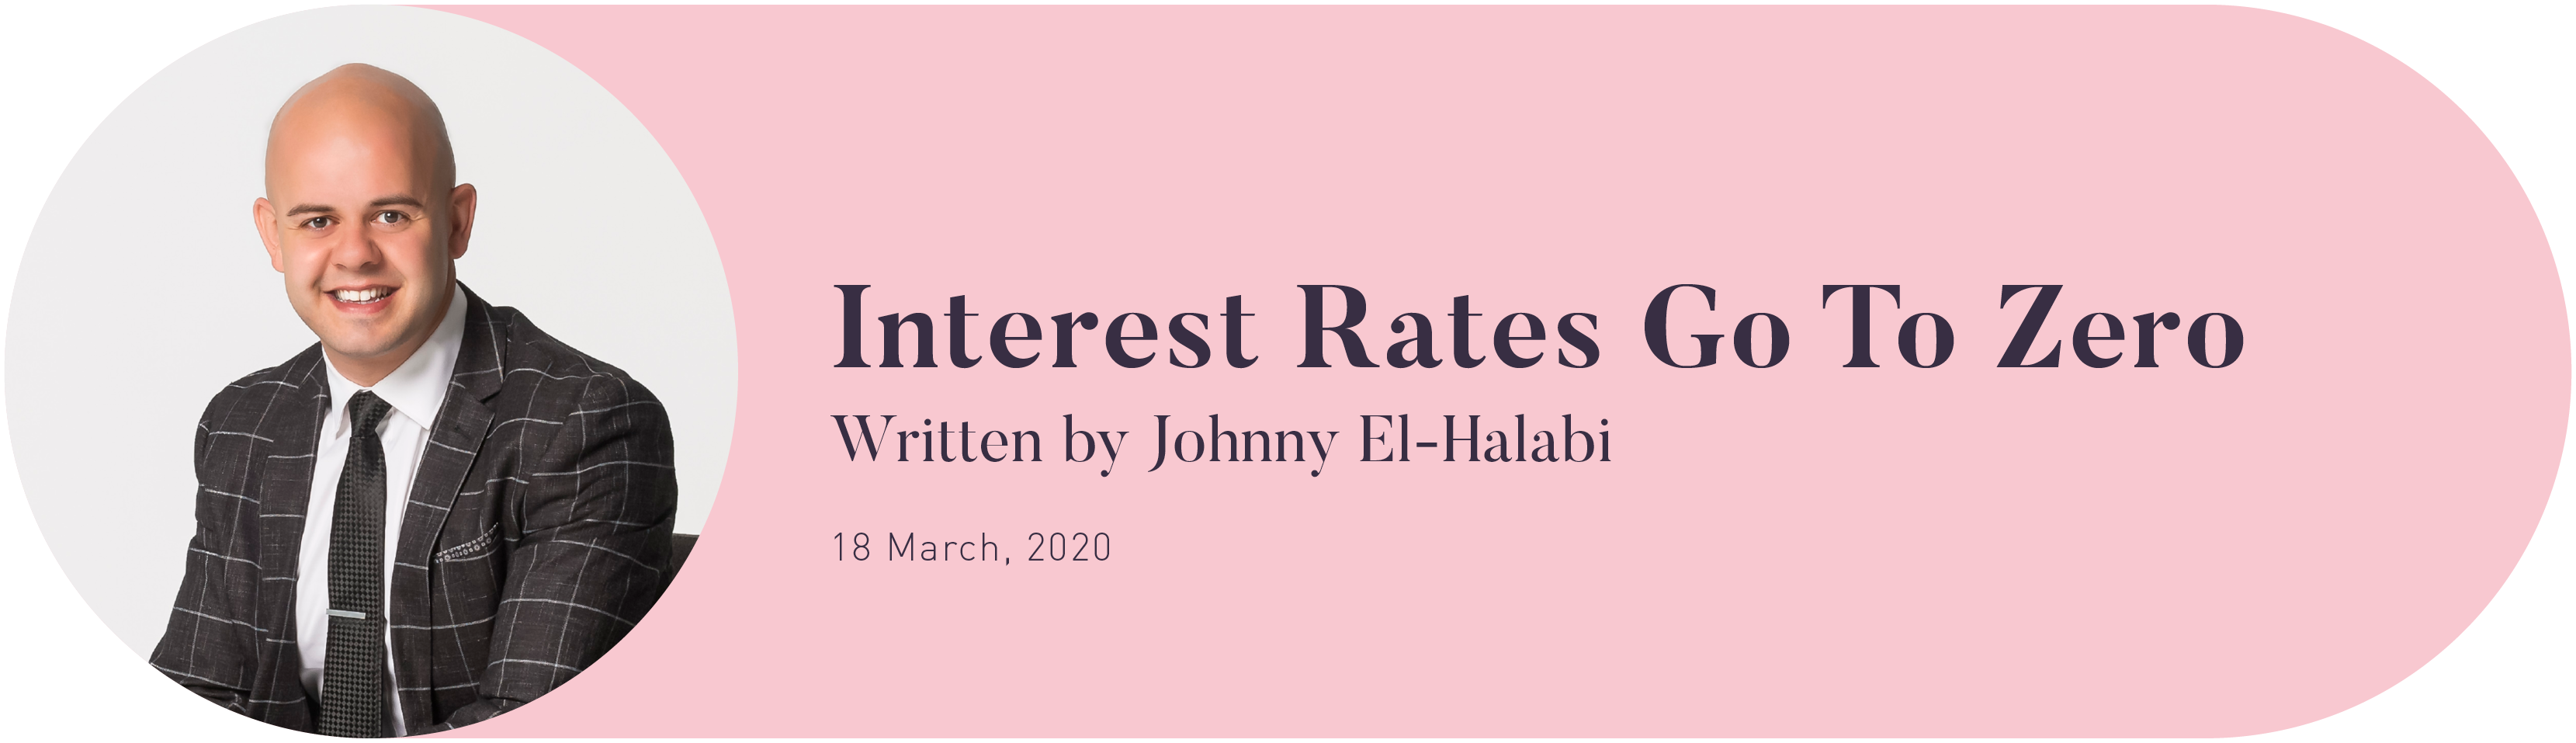 Interest Rates Go To Zero